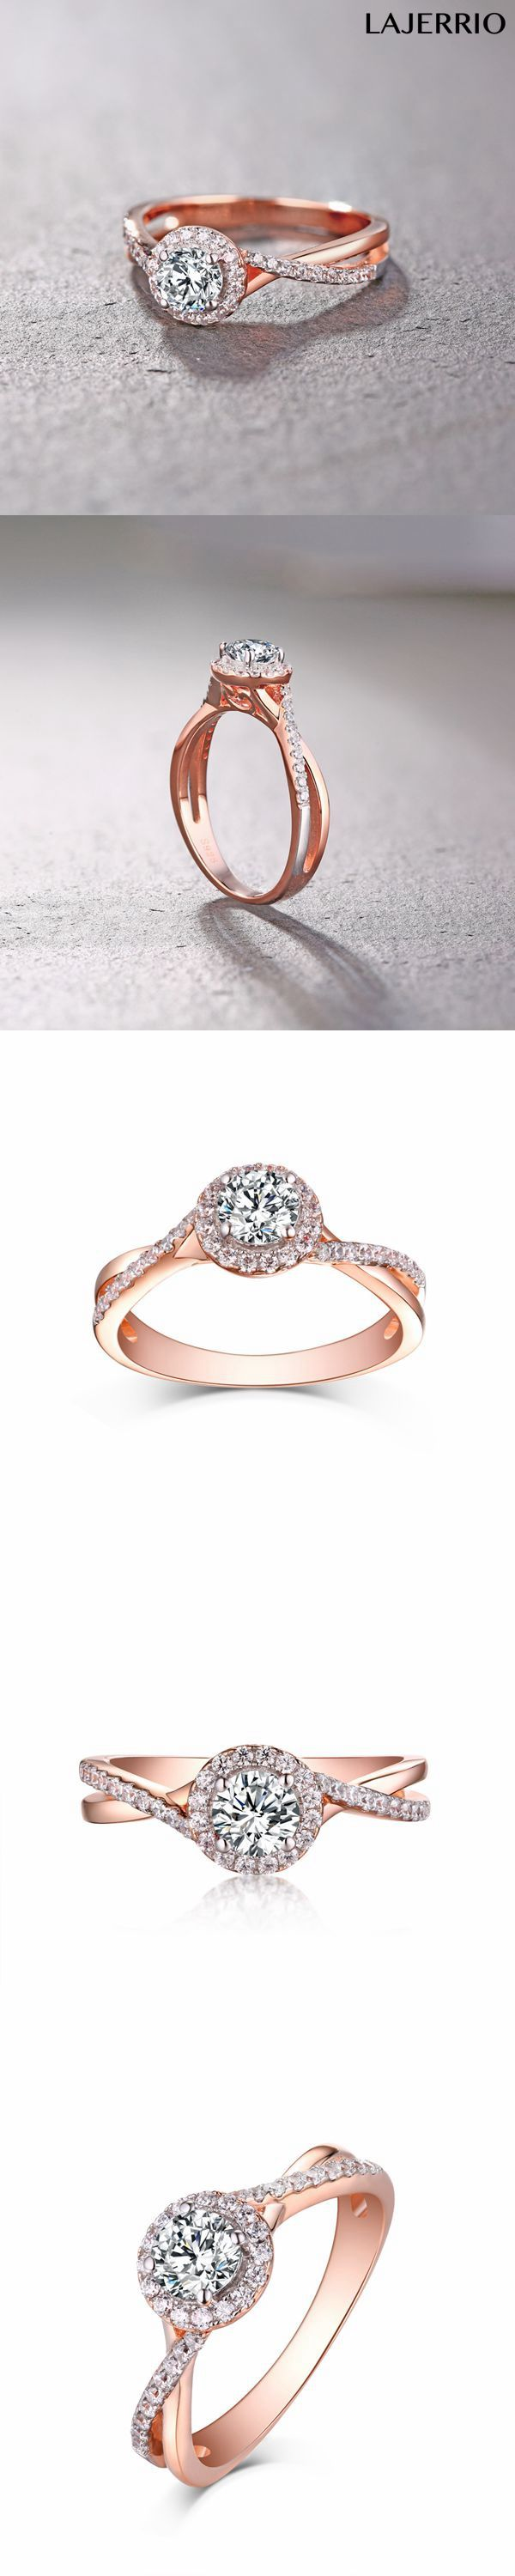 Lajerrio Jewelry Round Cut Rose Gold 925 Sterling Silver White Sapphire Halo Engagement Rings